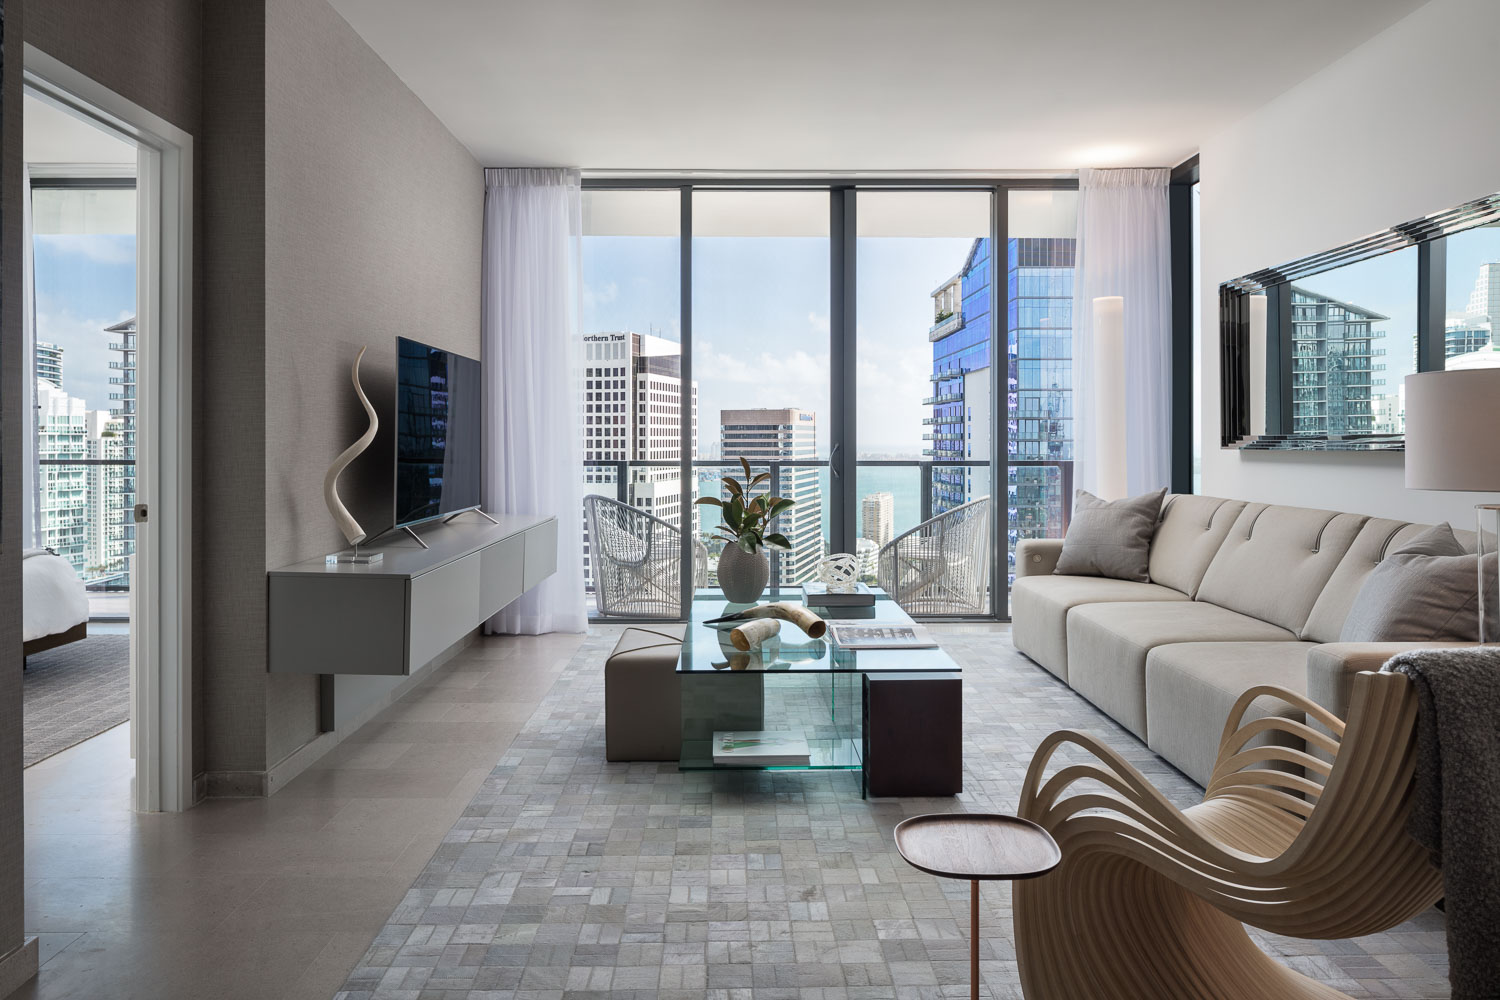 In addition to commercial and retail space, there are short-stay hotel guest rooms, long-term luxury hotel residences, and apartments and condominiums for purchase or rent.